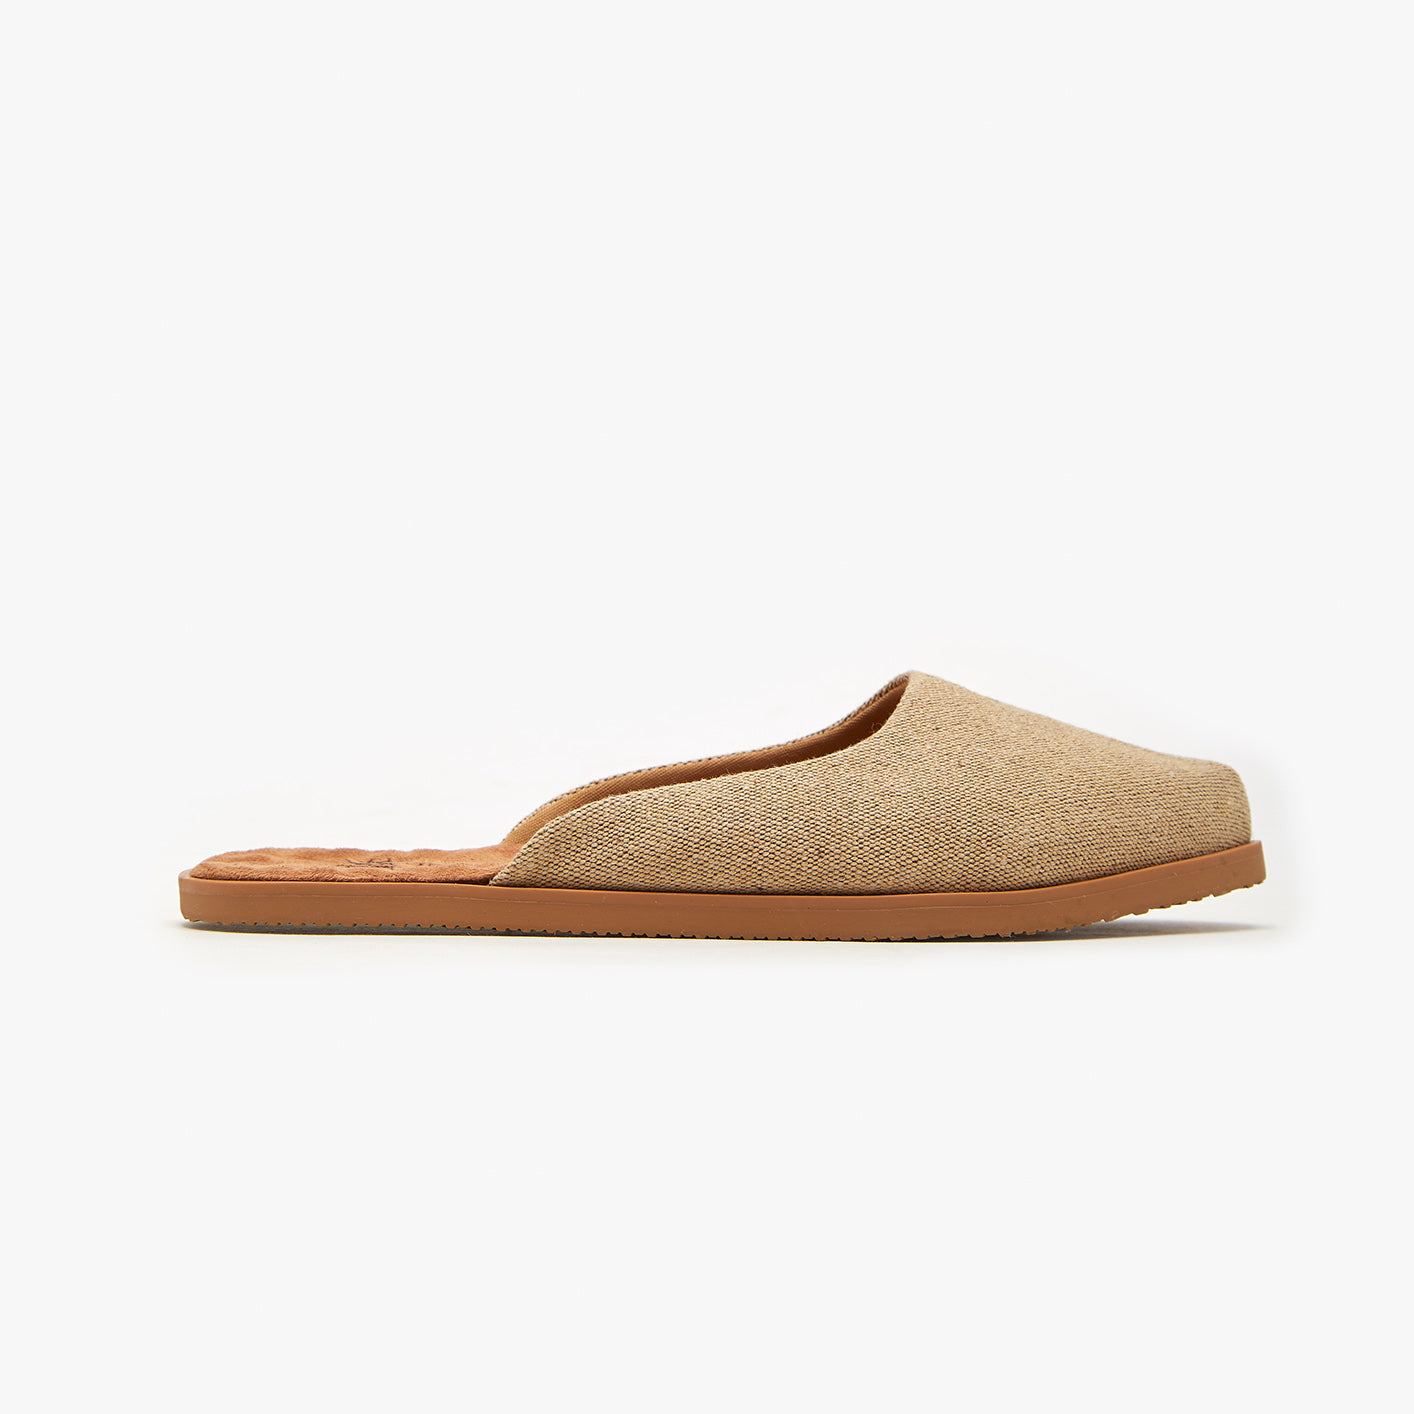 Mono Castanha Mule - Insecta Shoes